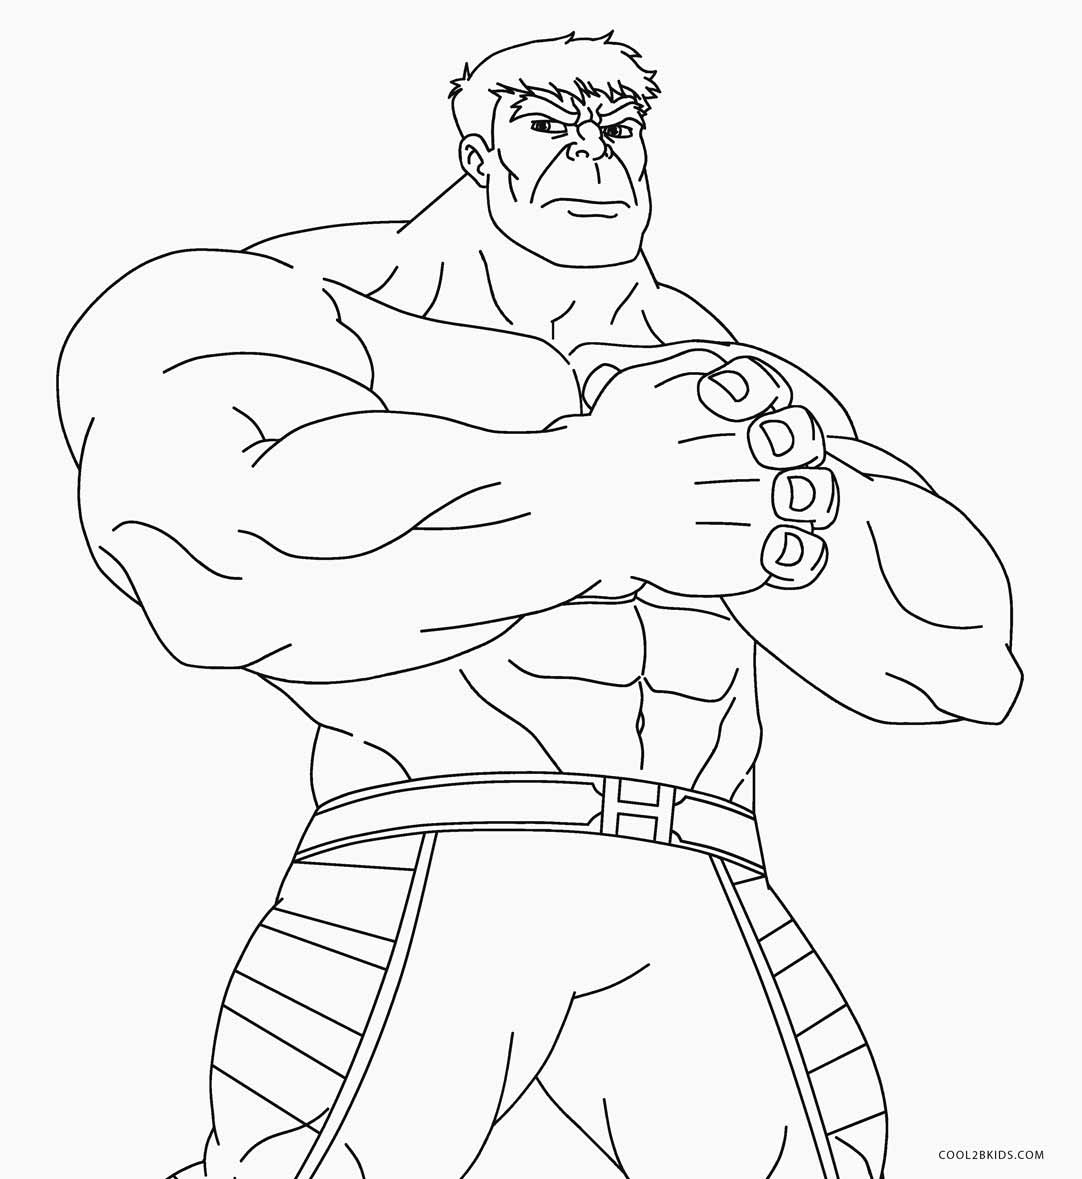 Hulk coloring book pages ~ Free Printable Hulk Coloring Pages For Kids | Cool2bKids